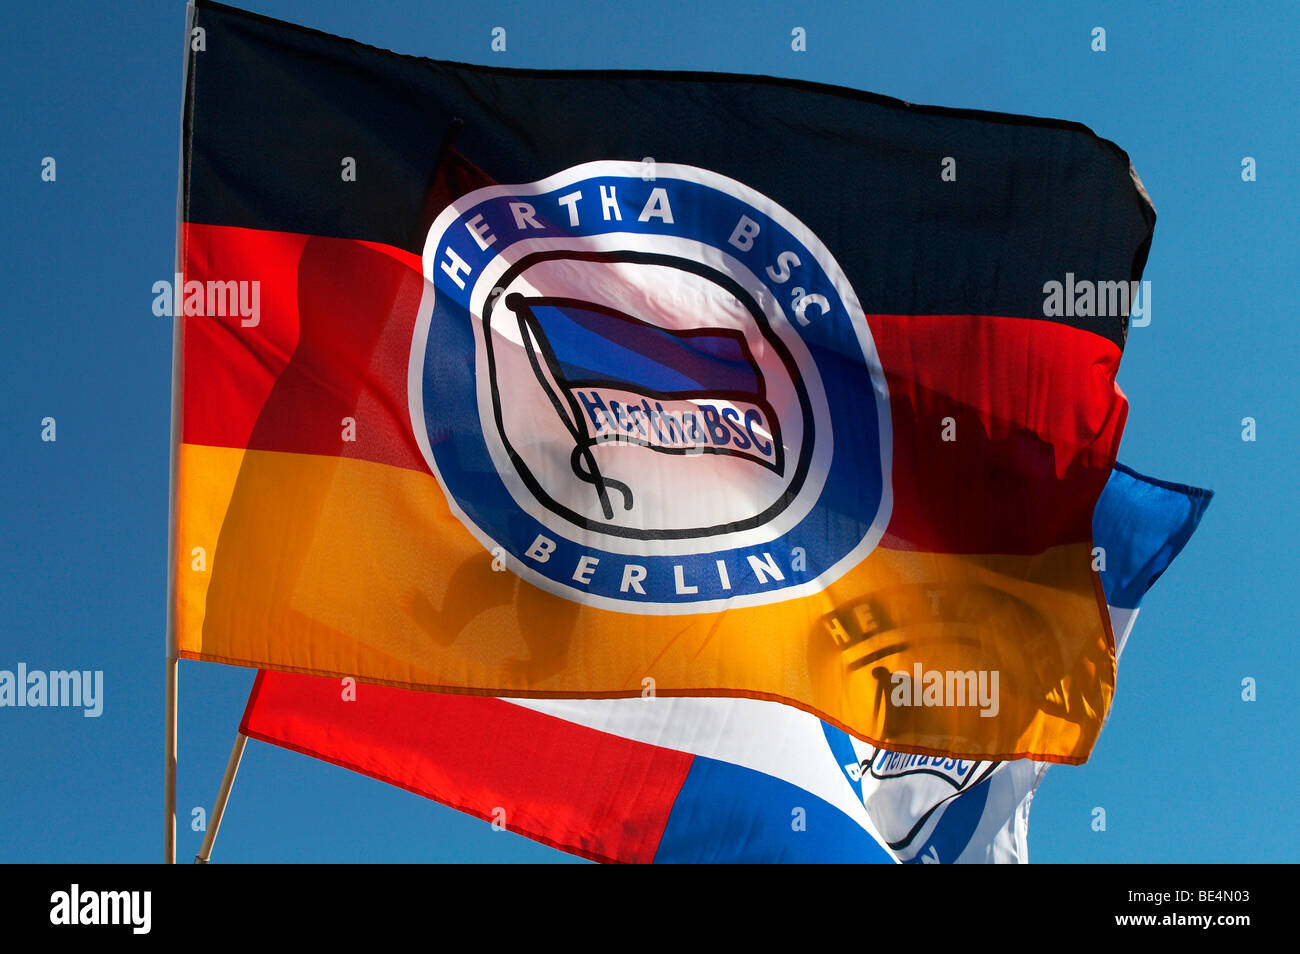 Germany flag with the emblem of Hertha Berlin, Germany, Europe - Stock Image